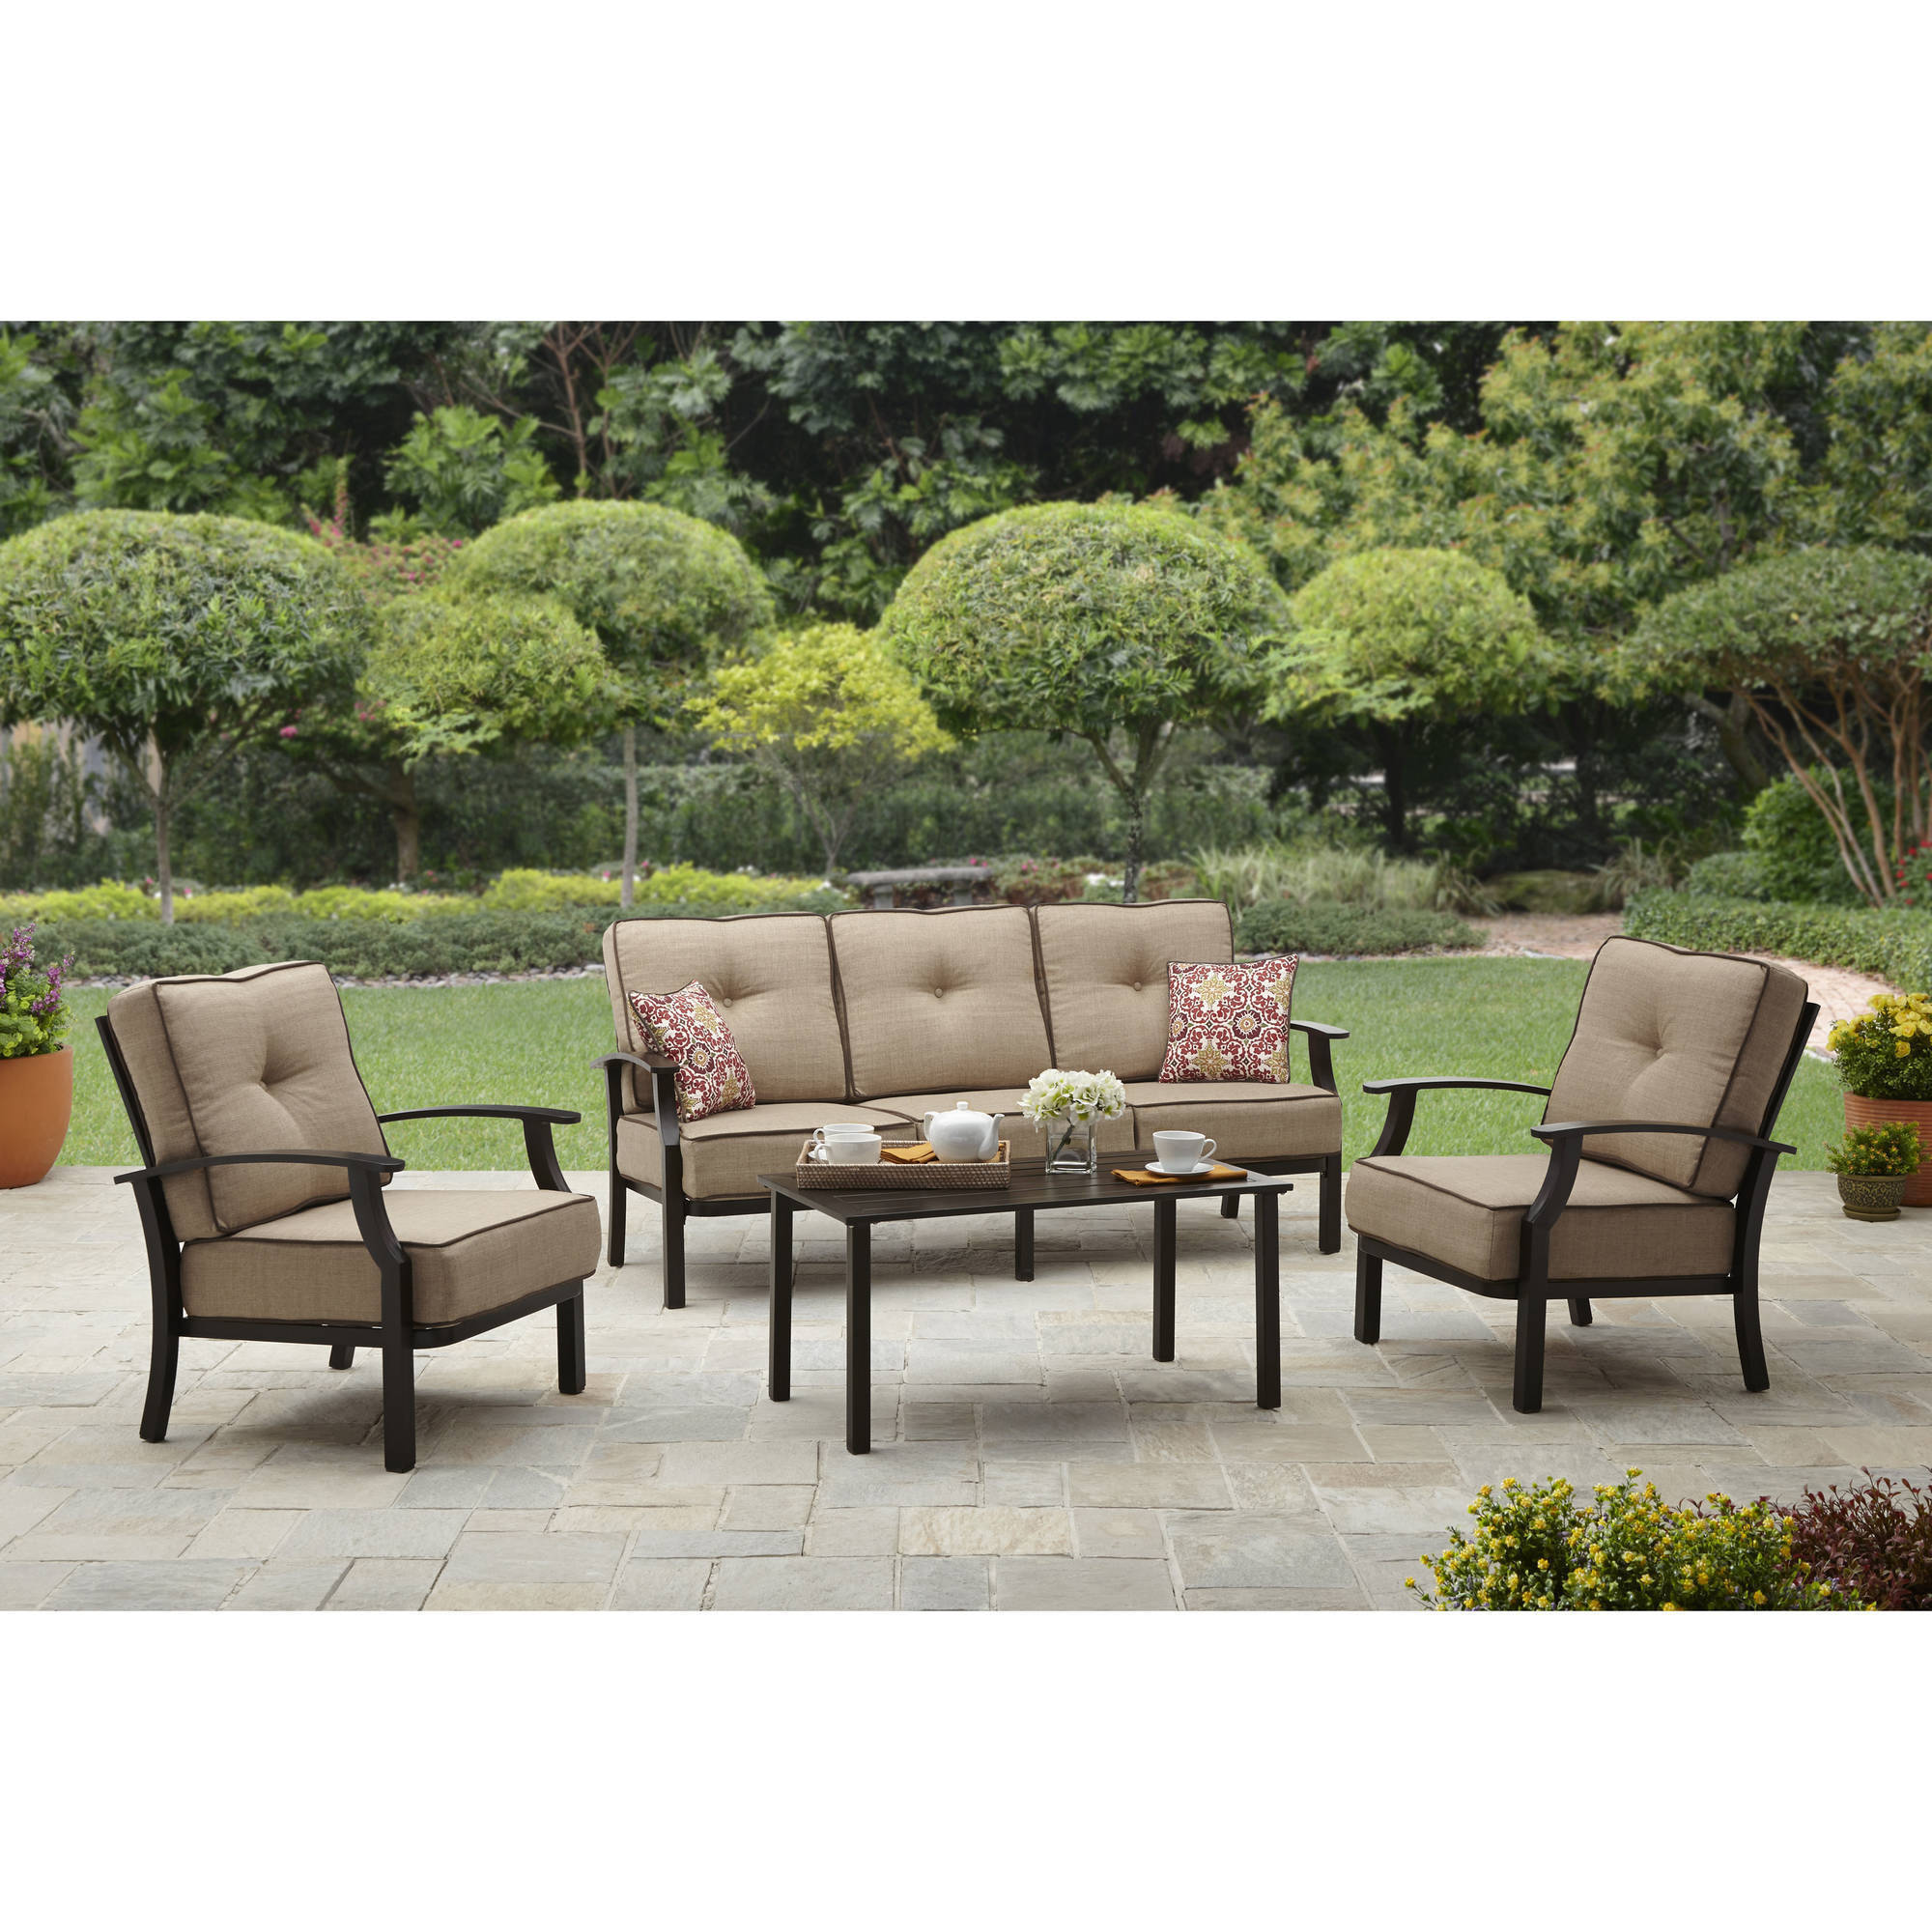 Patio Furniture Tucson at Home and Interior Design Ideas